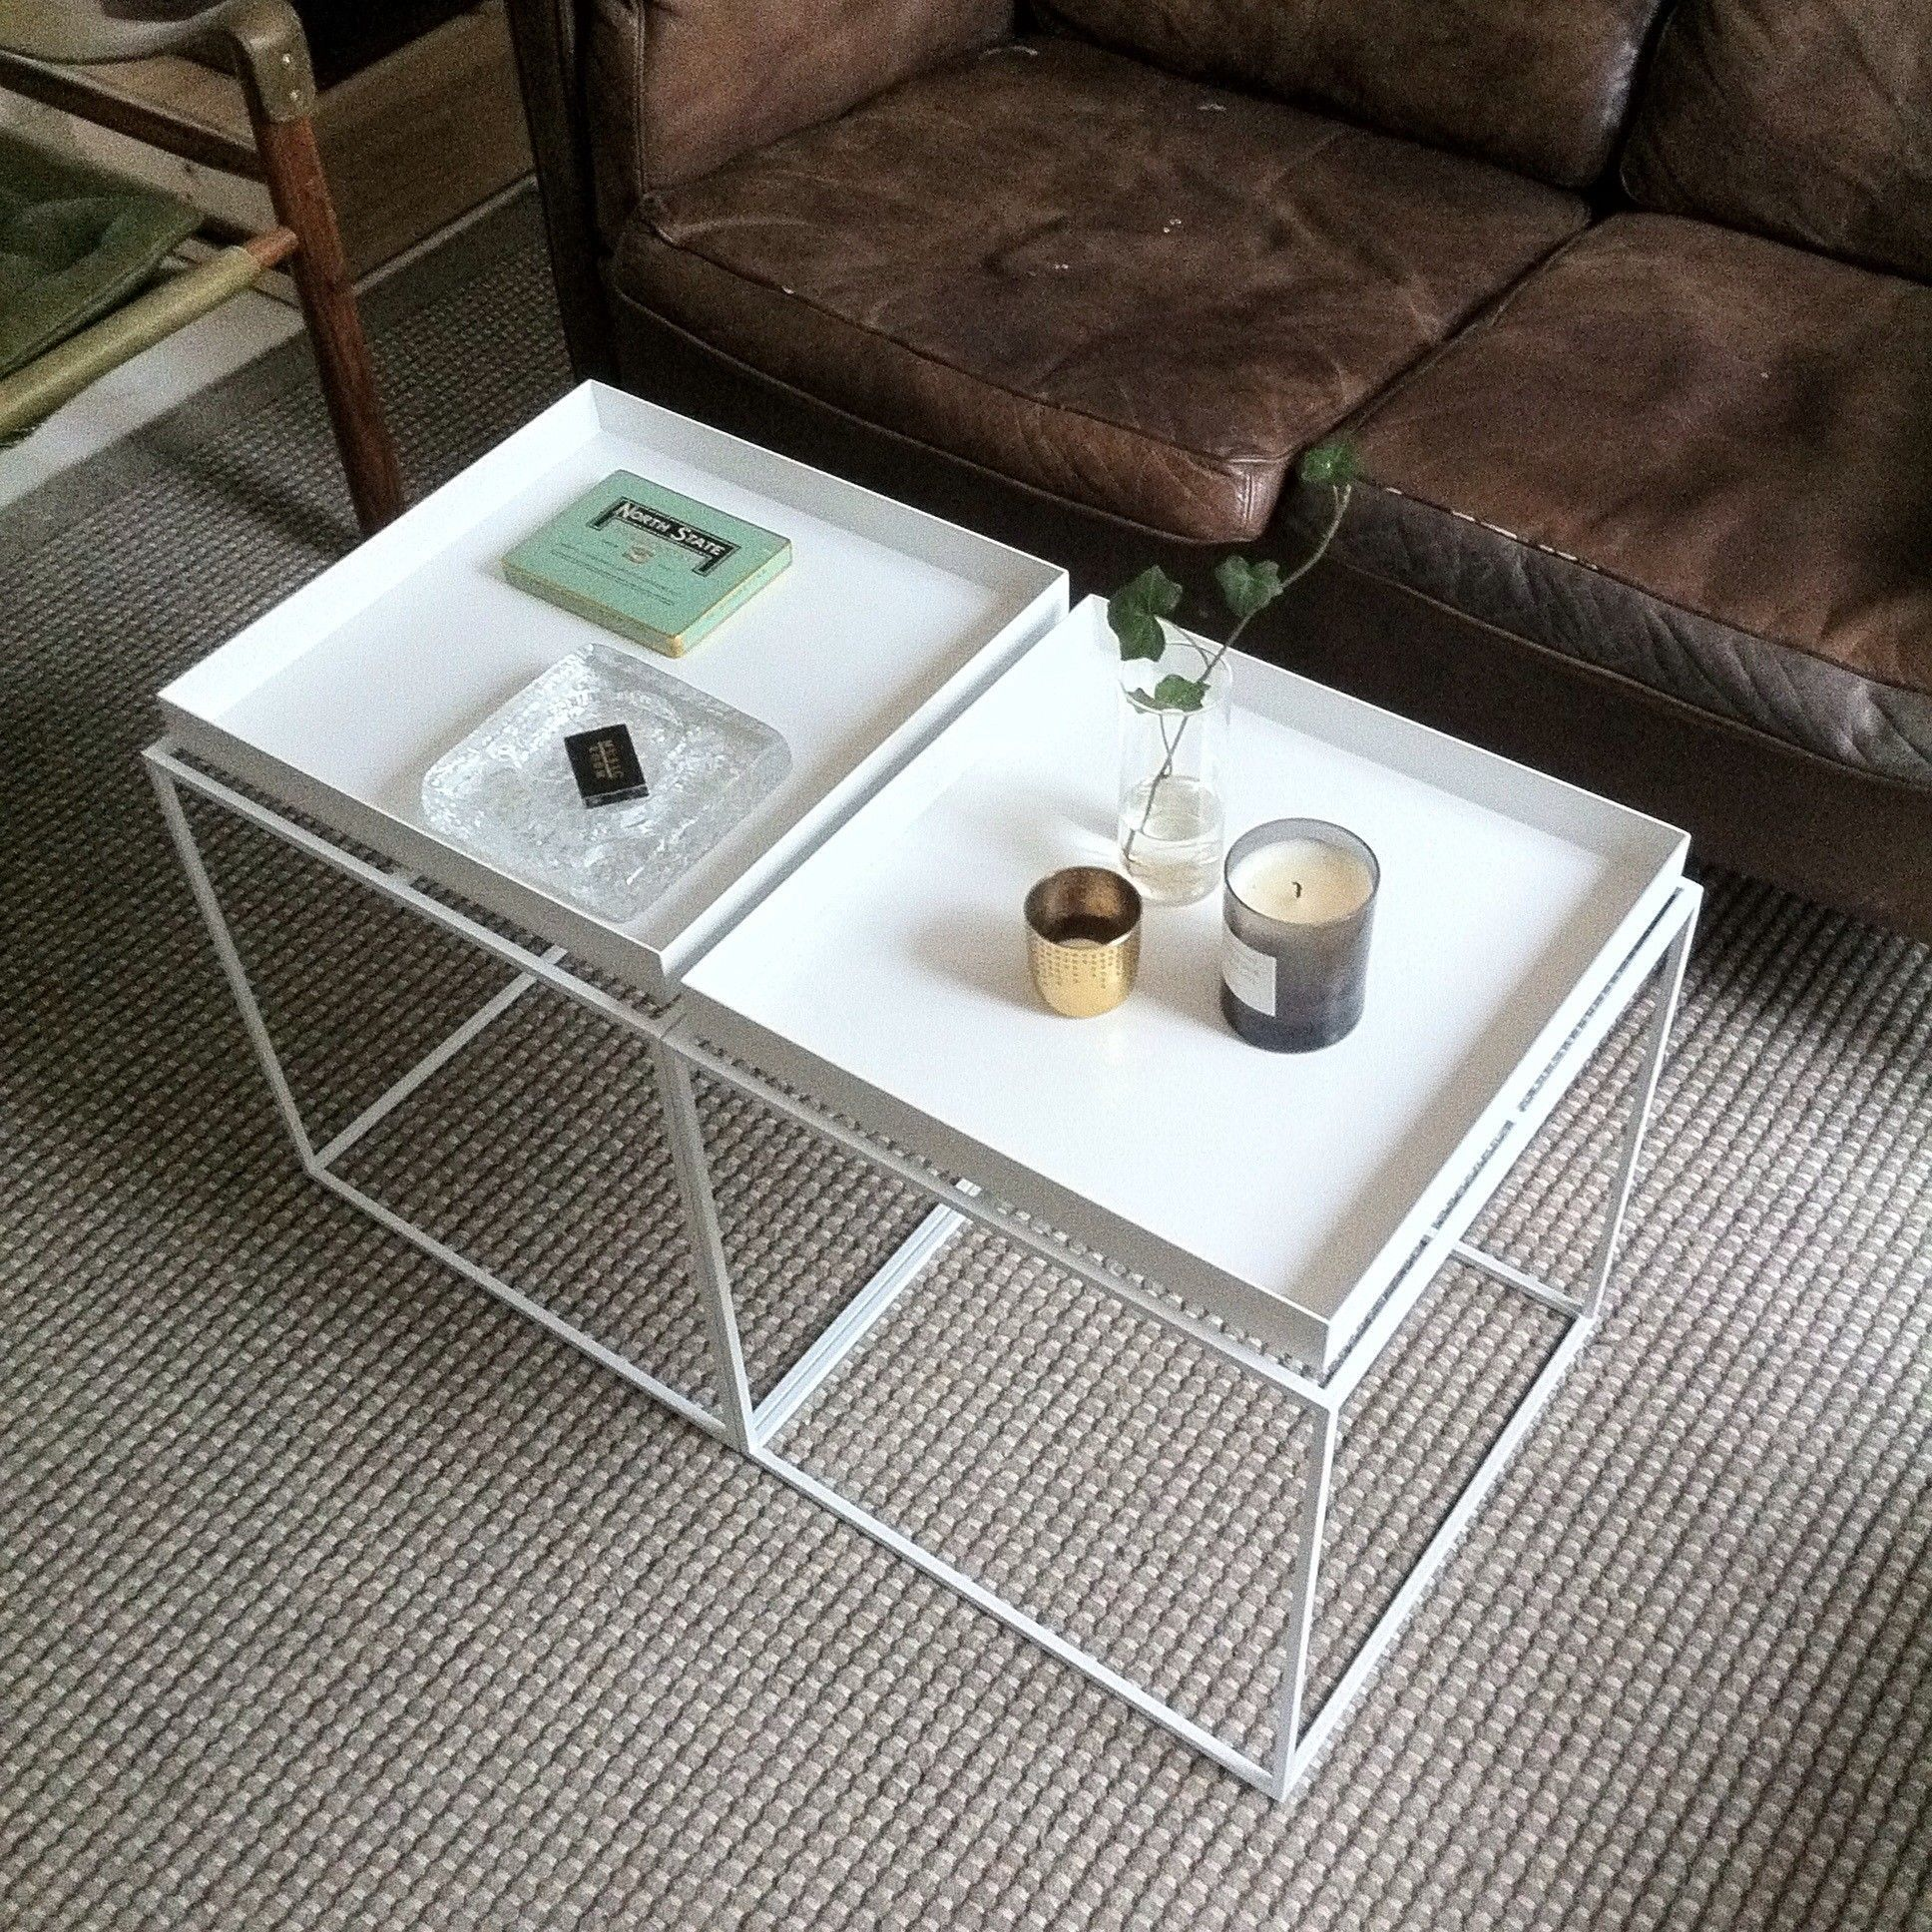 Two Small Coffee Tables Pushed Together Gives The Living Room Set Up An Added Level Of Flexibility Hay Tray Table Coffee Table Coffee Table Accessories [ 1936 x 1936 Pixel ]